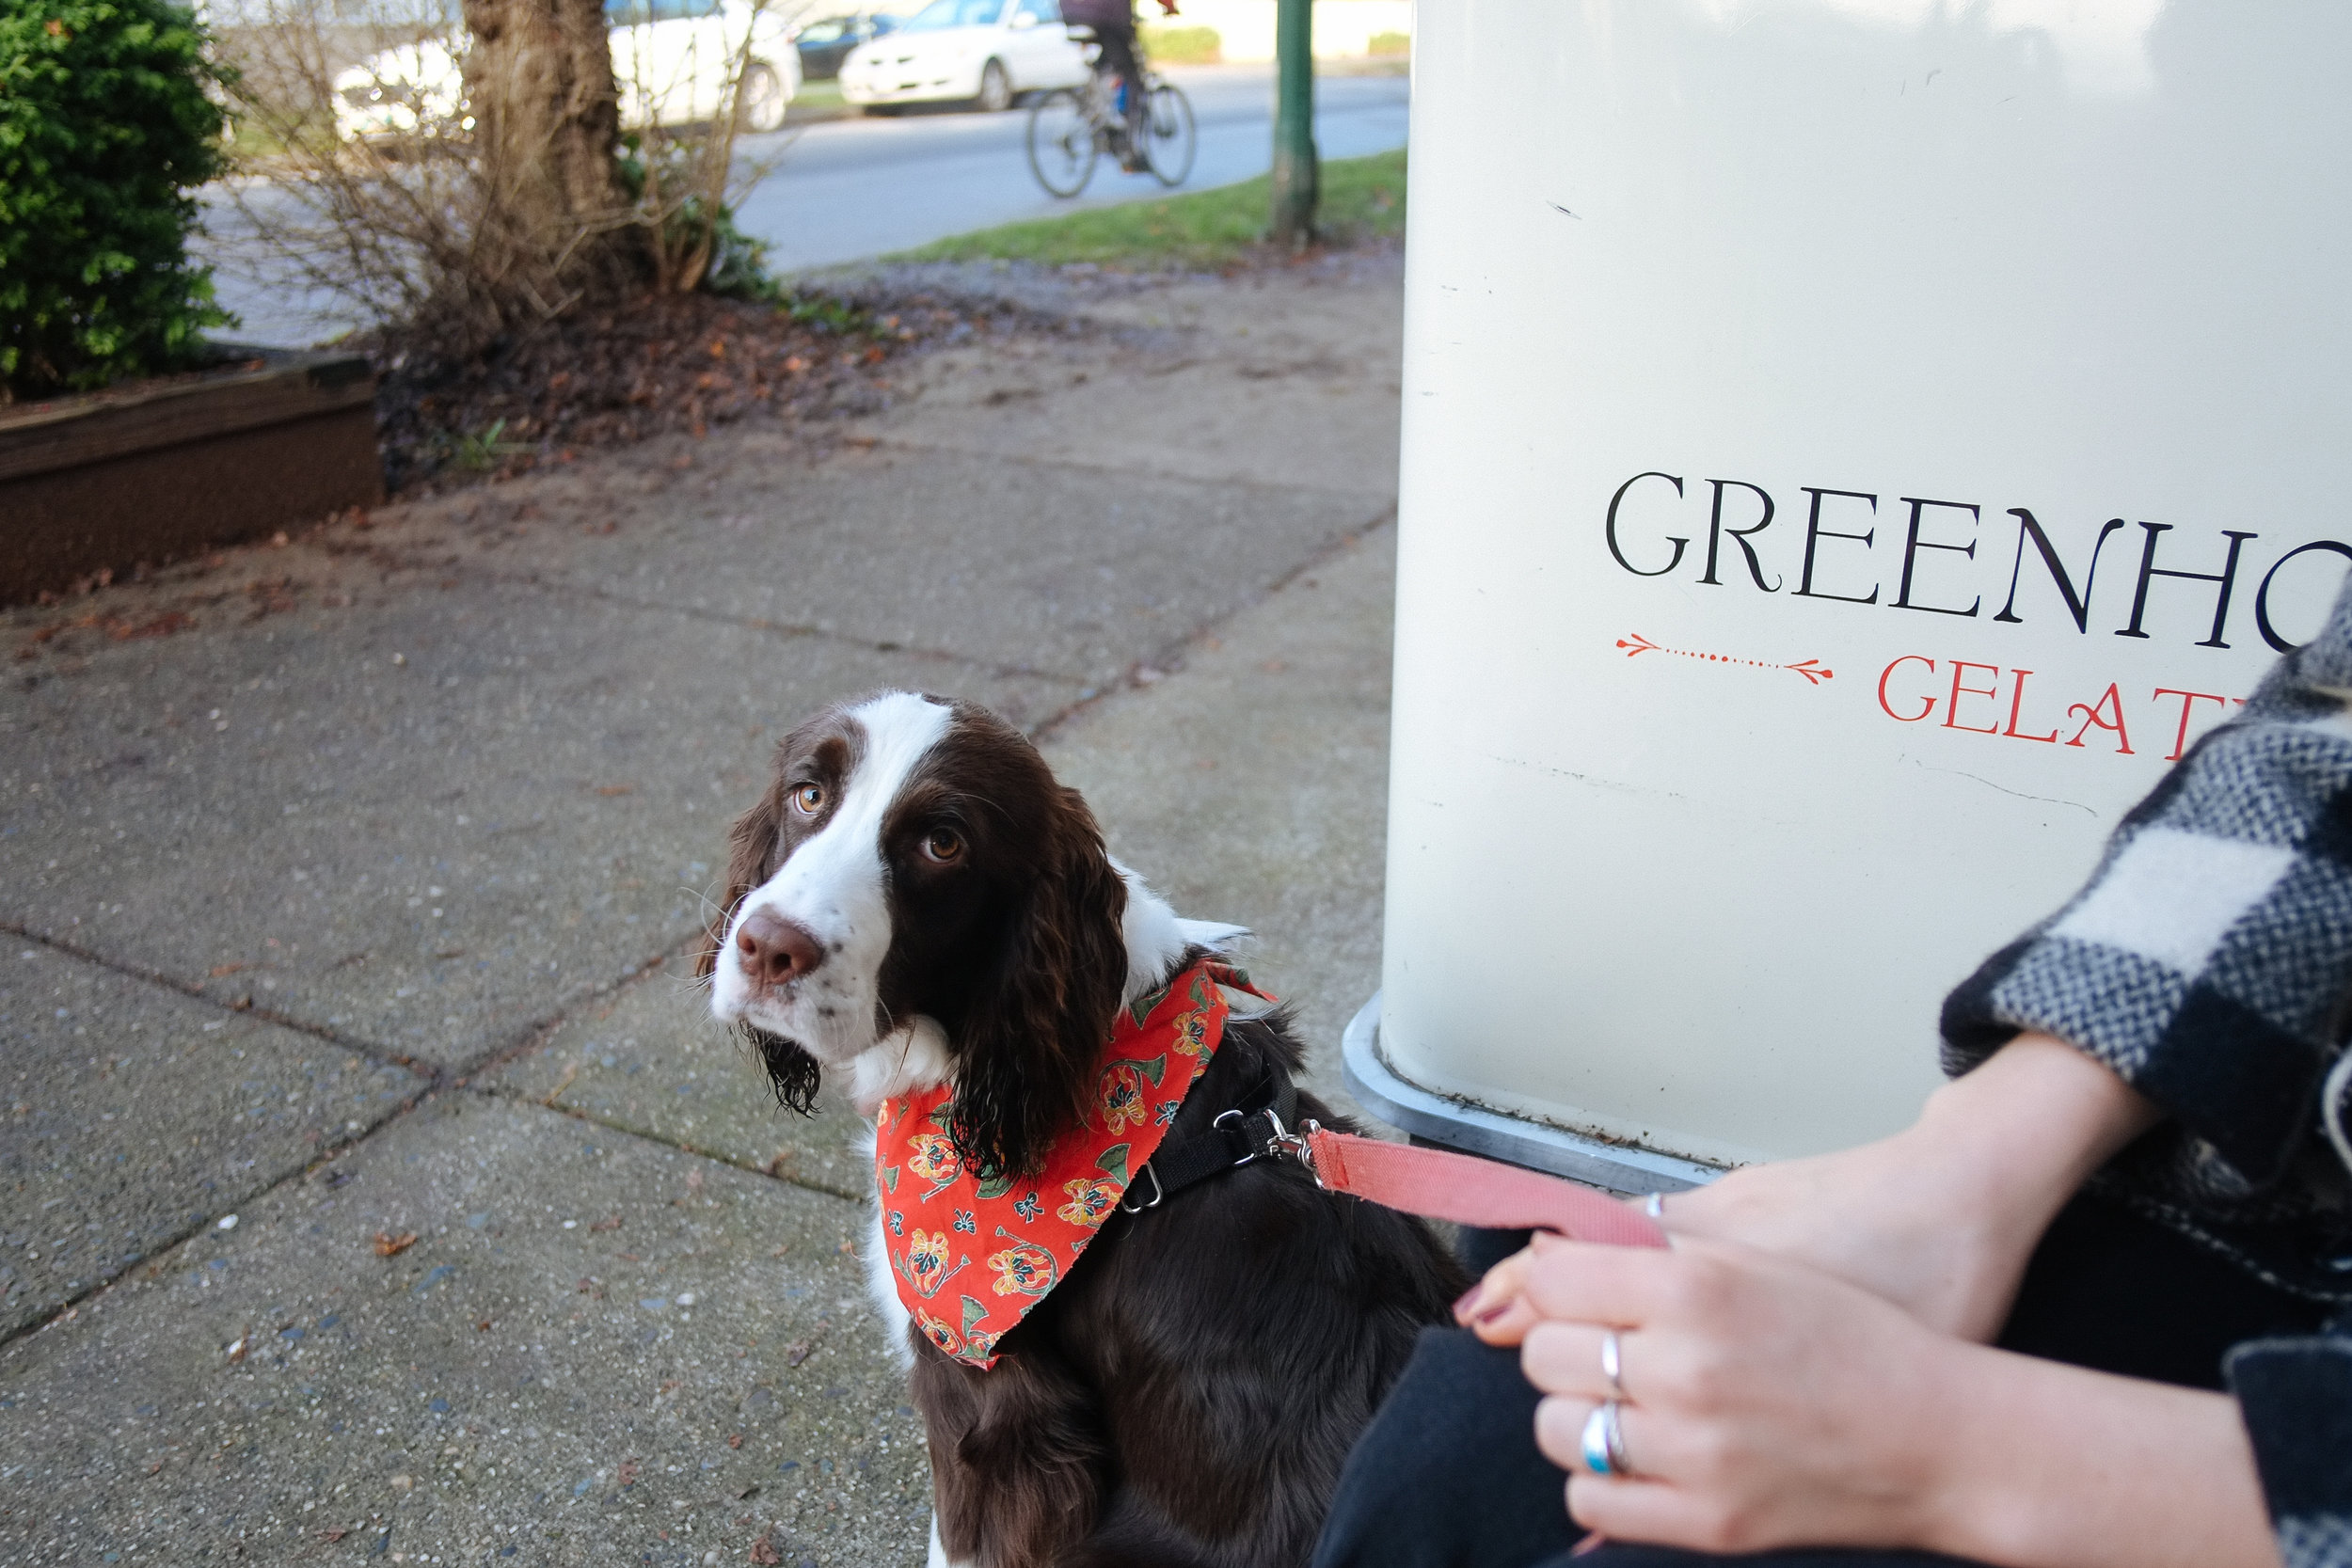 Greenhorn Cafe - 2017-12-09: Chats, coffee, and a pup. Greenhorn is my favourite spot in the West End and the best spot to hang outside with a coffee (even in December.)